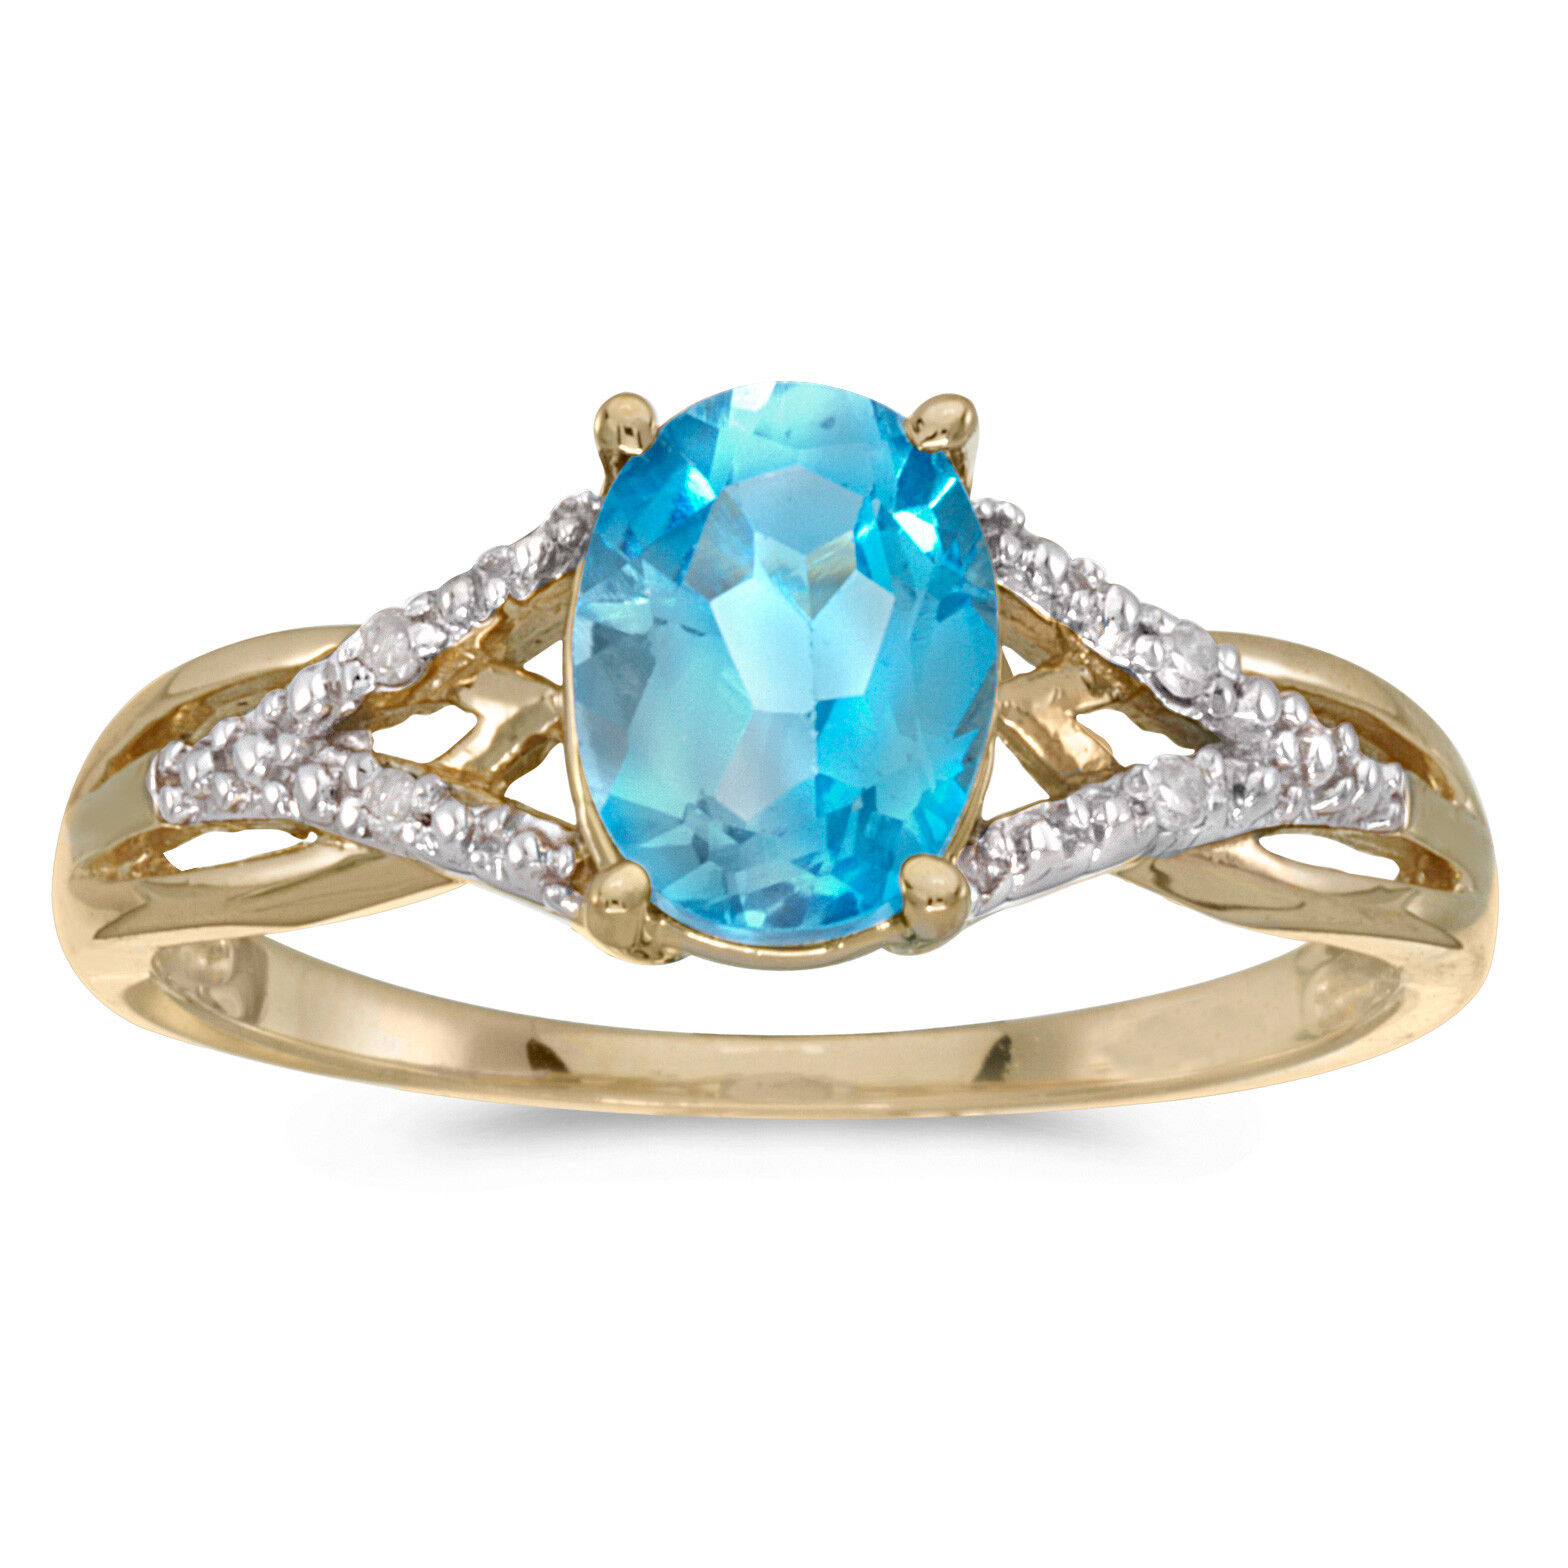 14k Yellow gold Oval bluee Topaz And Diamond Ring